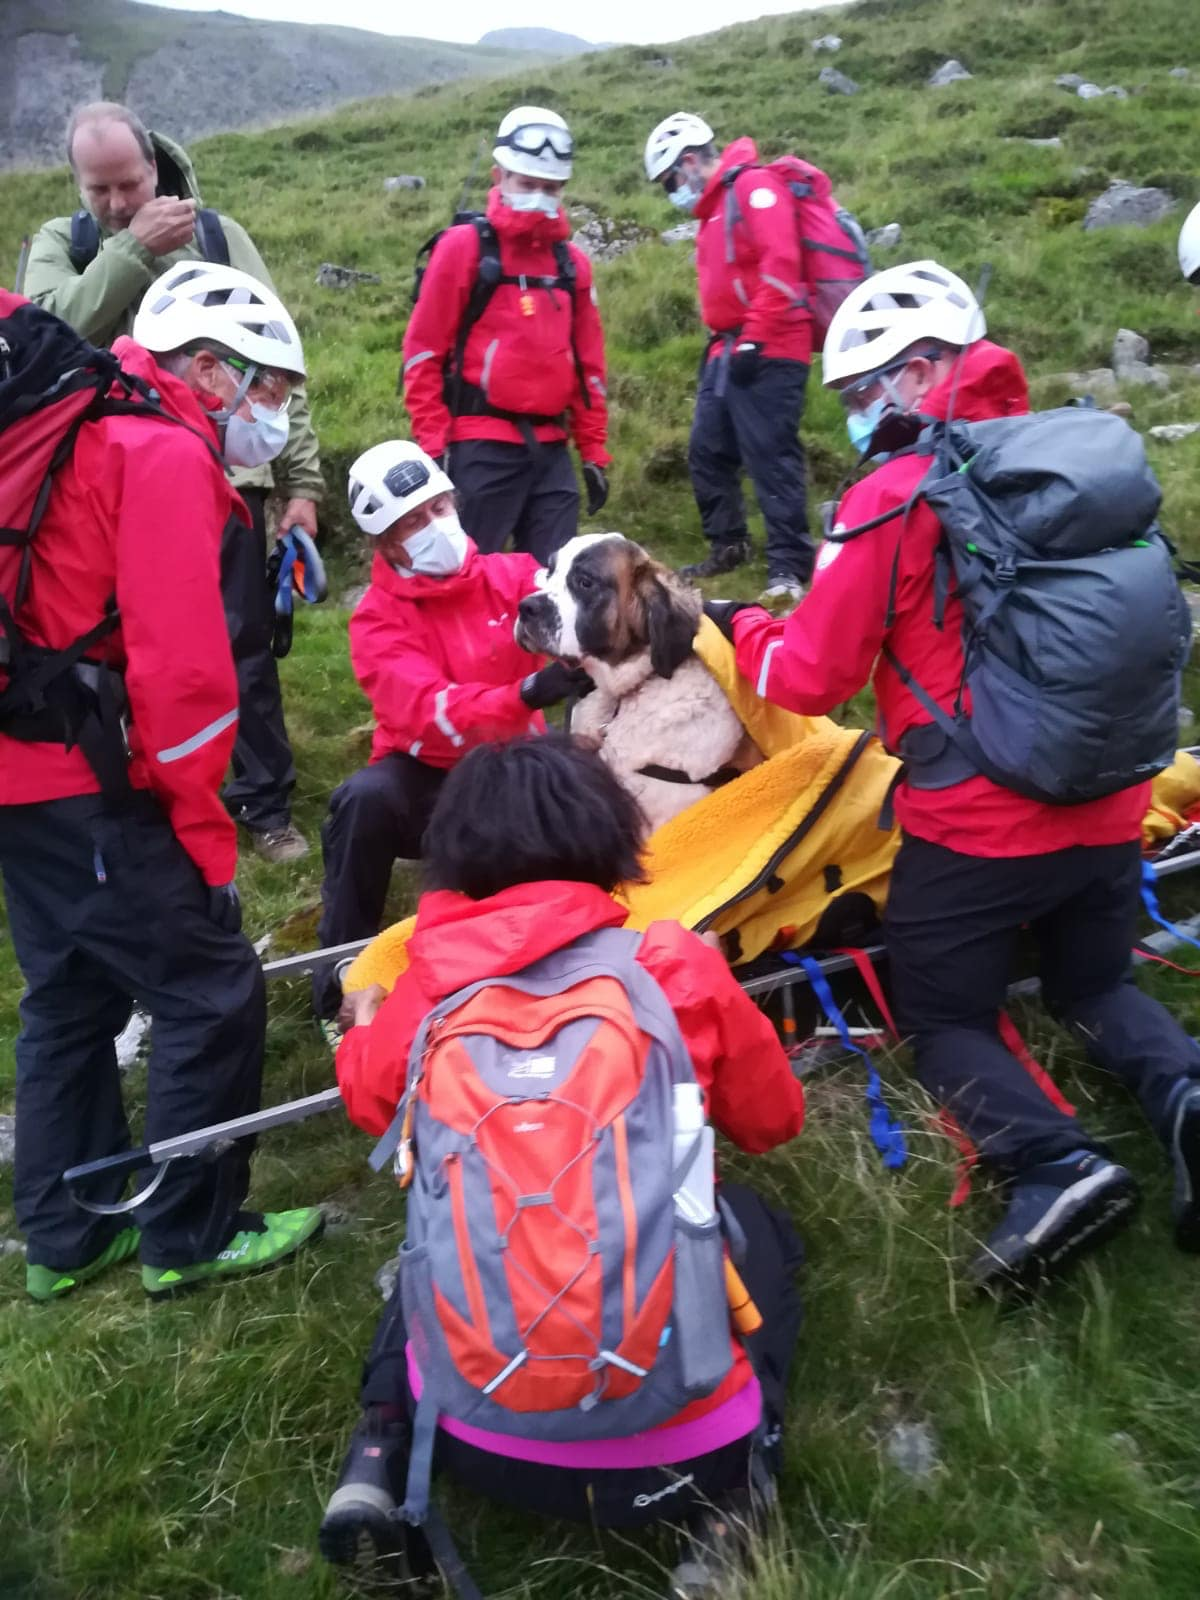 """The team gave  Daisy some treats so they could asses her and get her on to the stretcher, making sure they didn't cause any distress. Source"""" Facebook/Wasdale Mountain Rescue Team"""